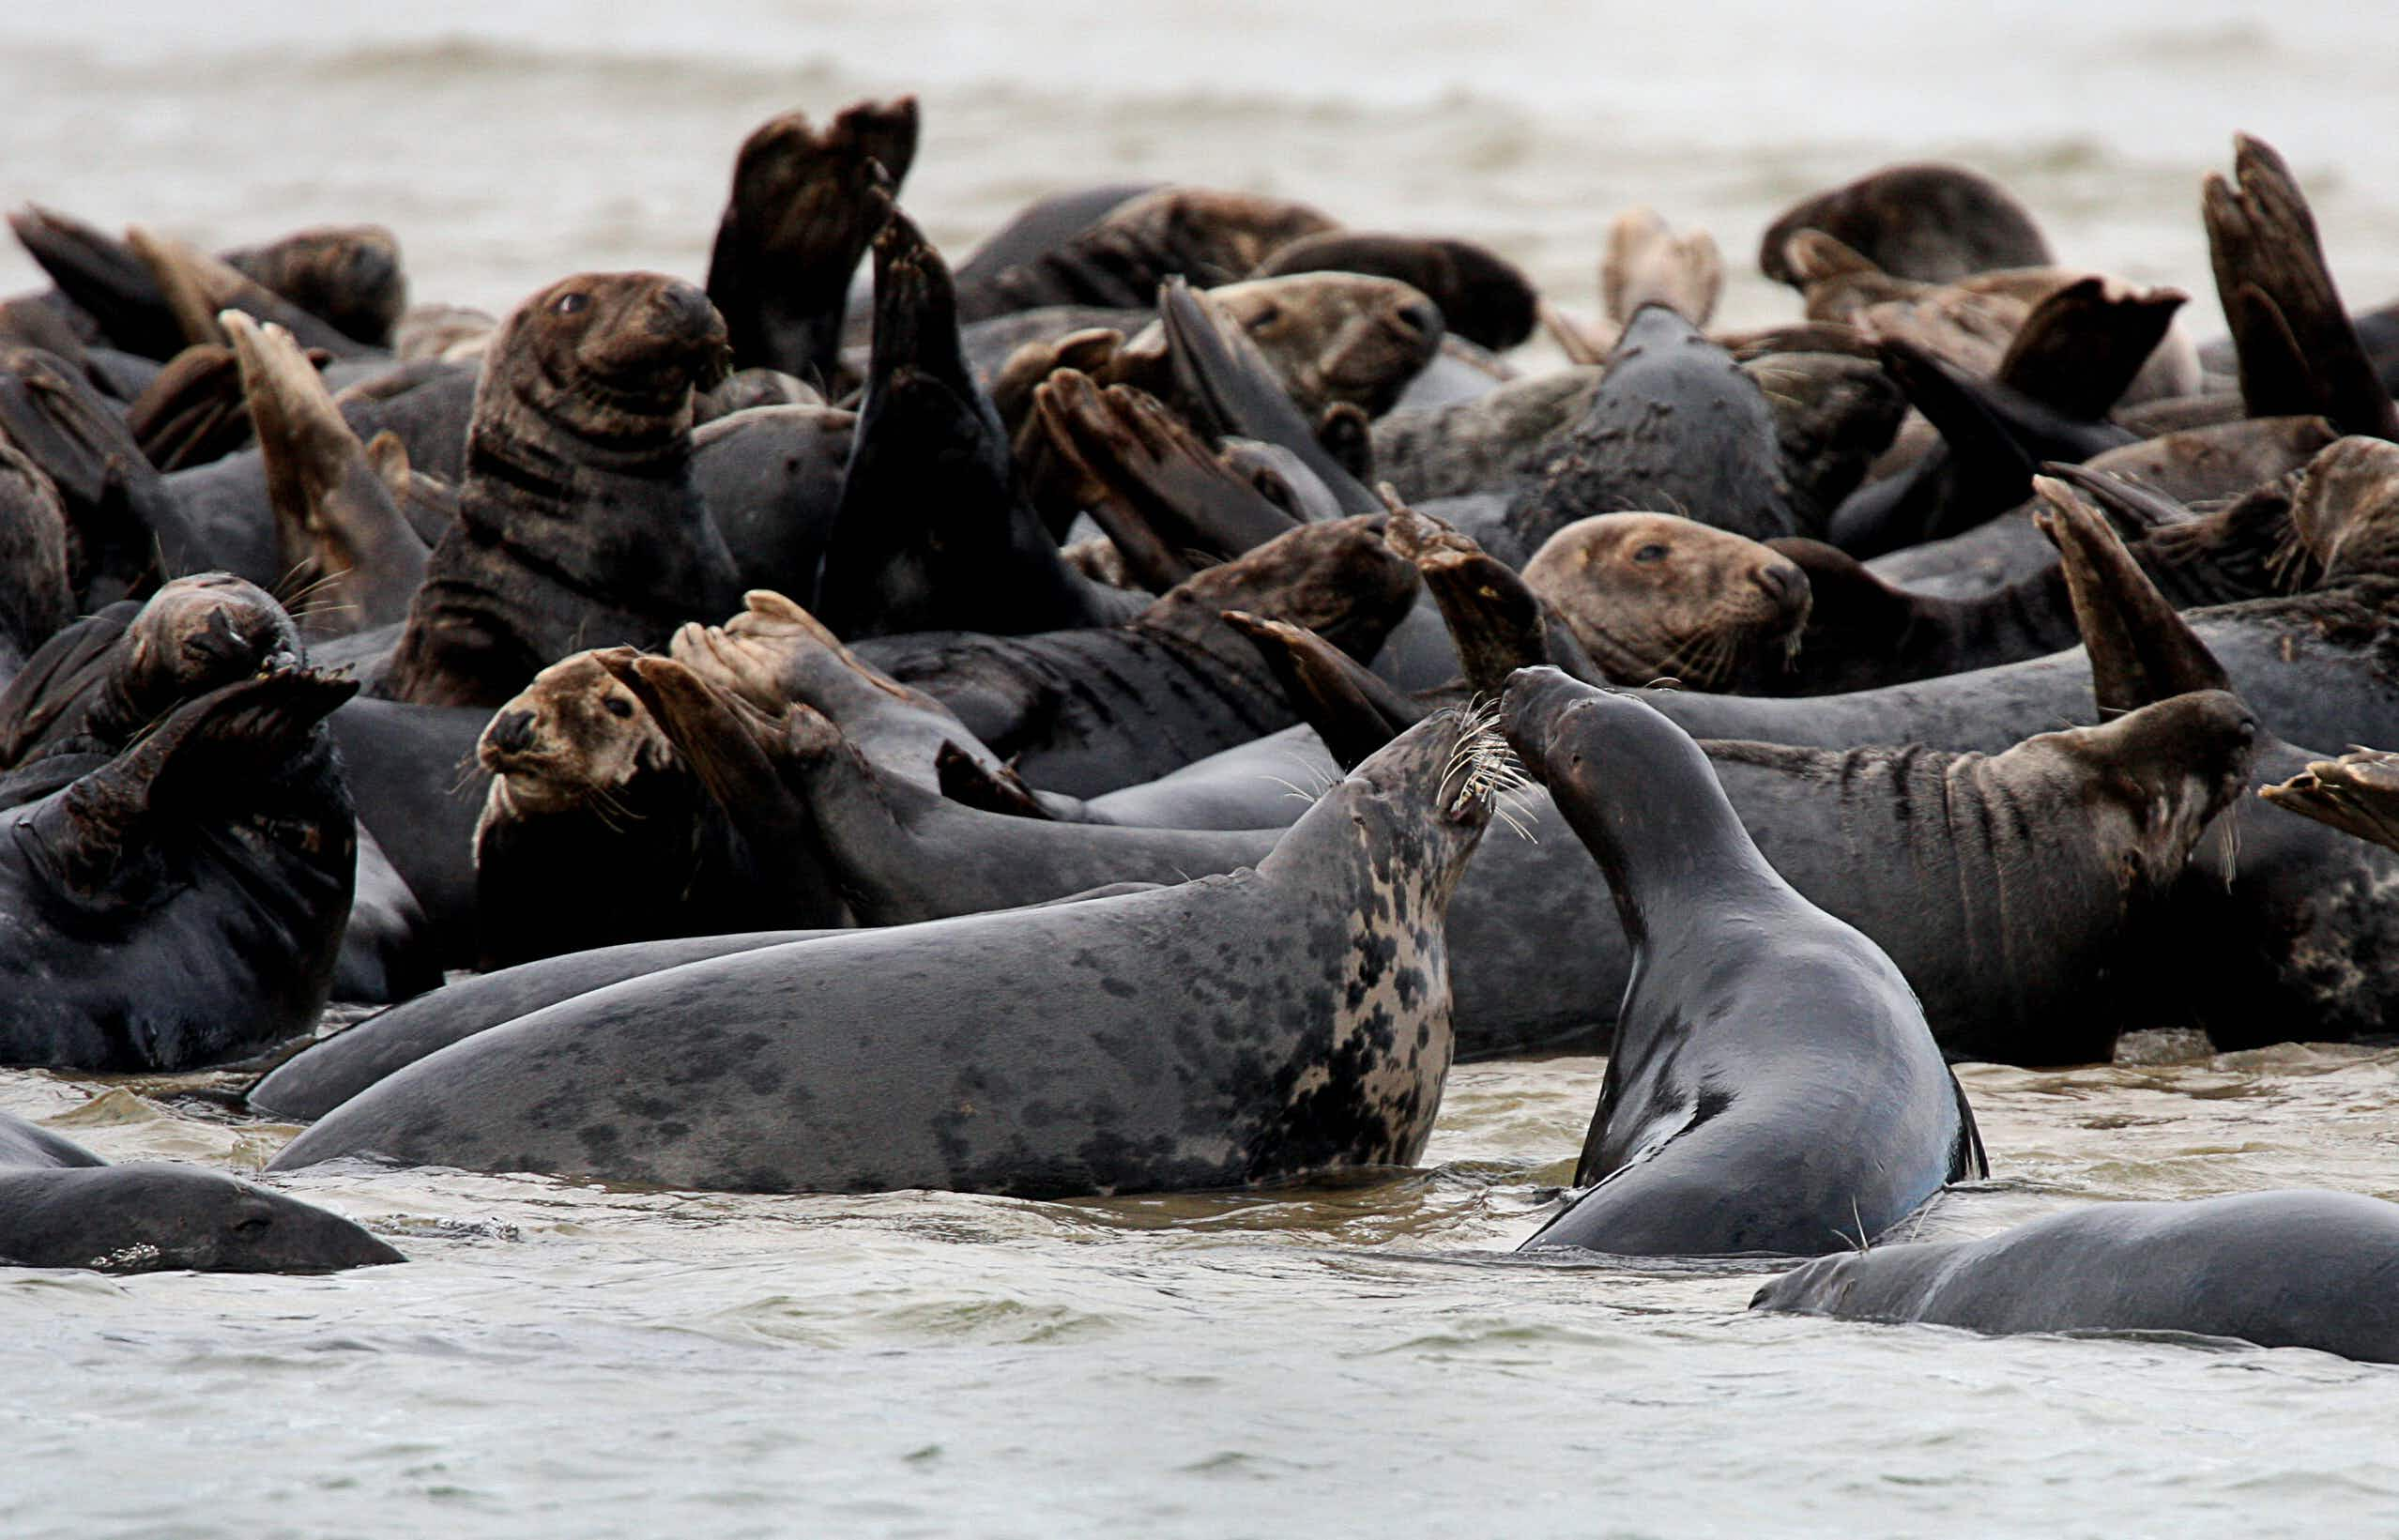 The once nearly extinct gray seal is making a comeback off the coast of New England